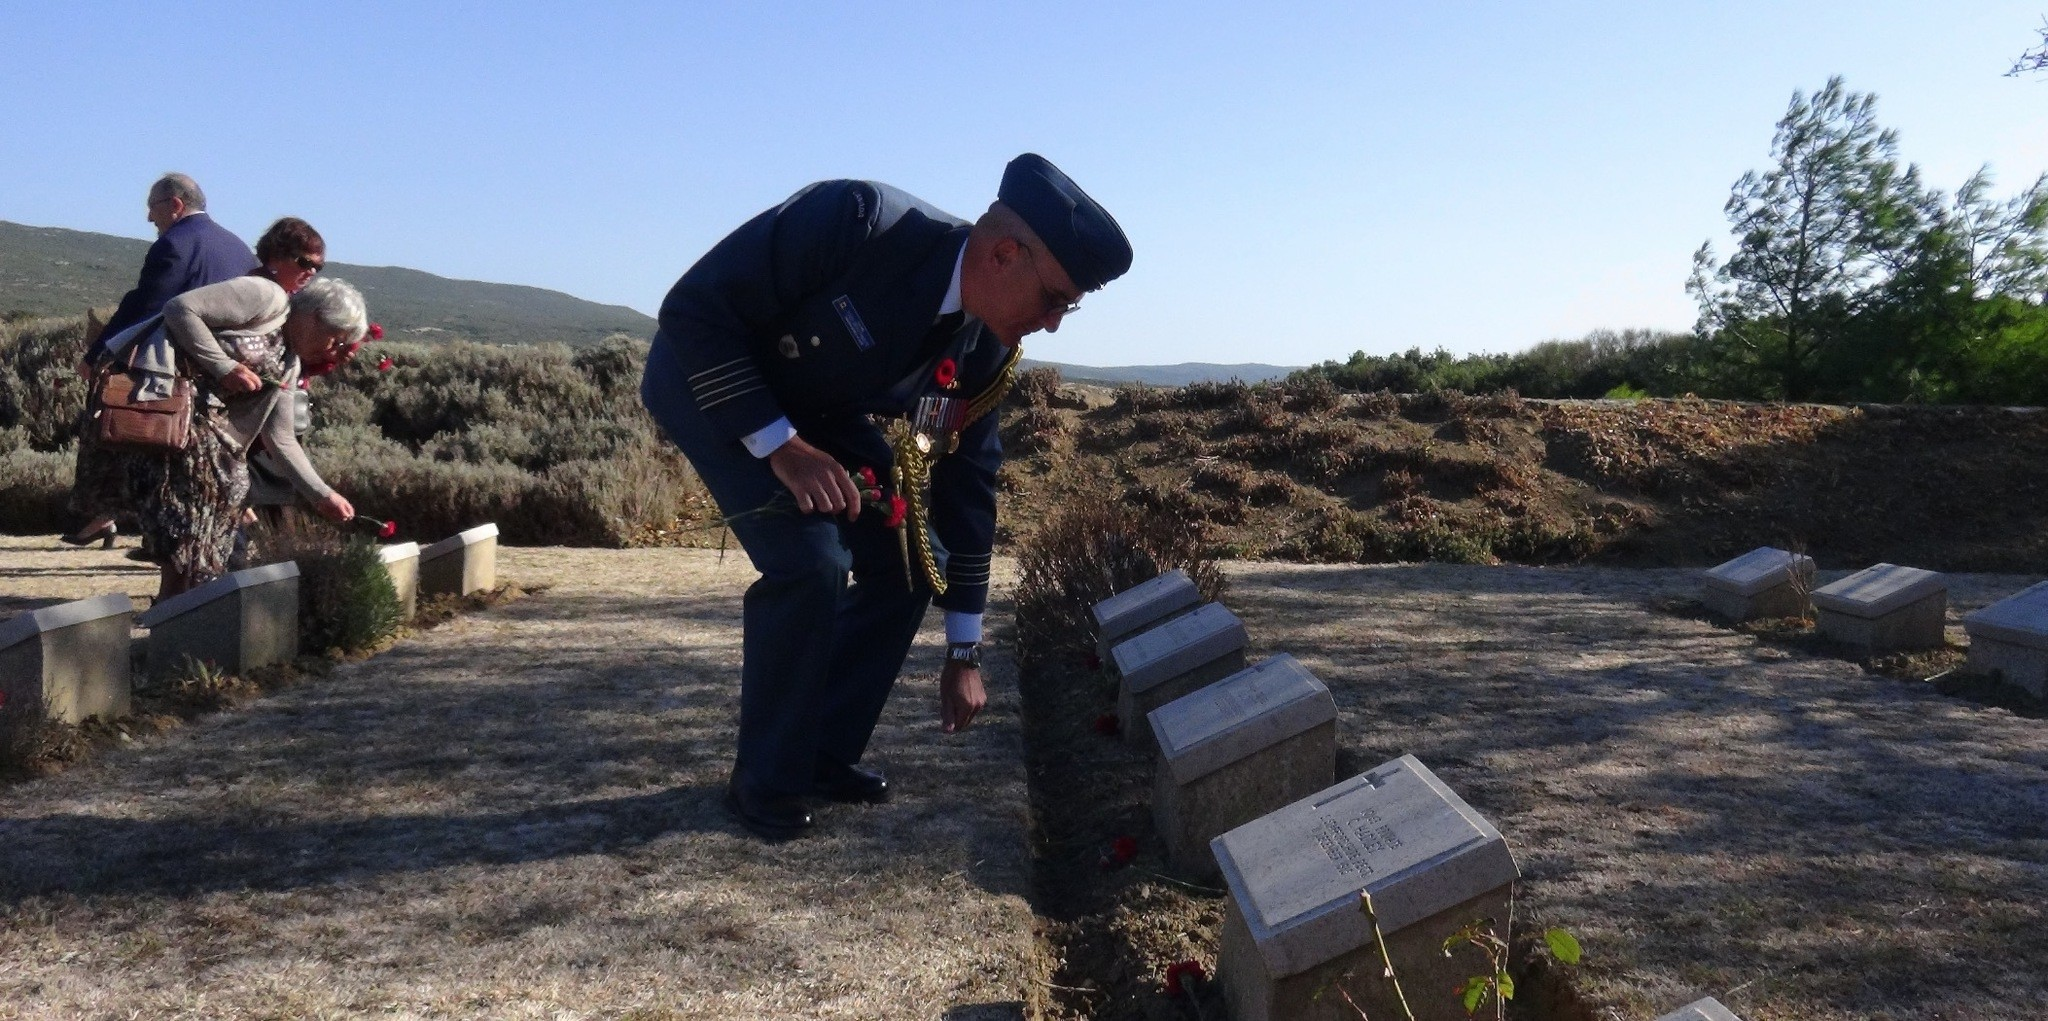 Canadian officials left carnations on the graves of Canadian soldiers who died in the Gallipoli campaign.